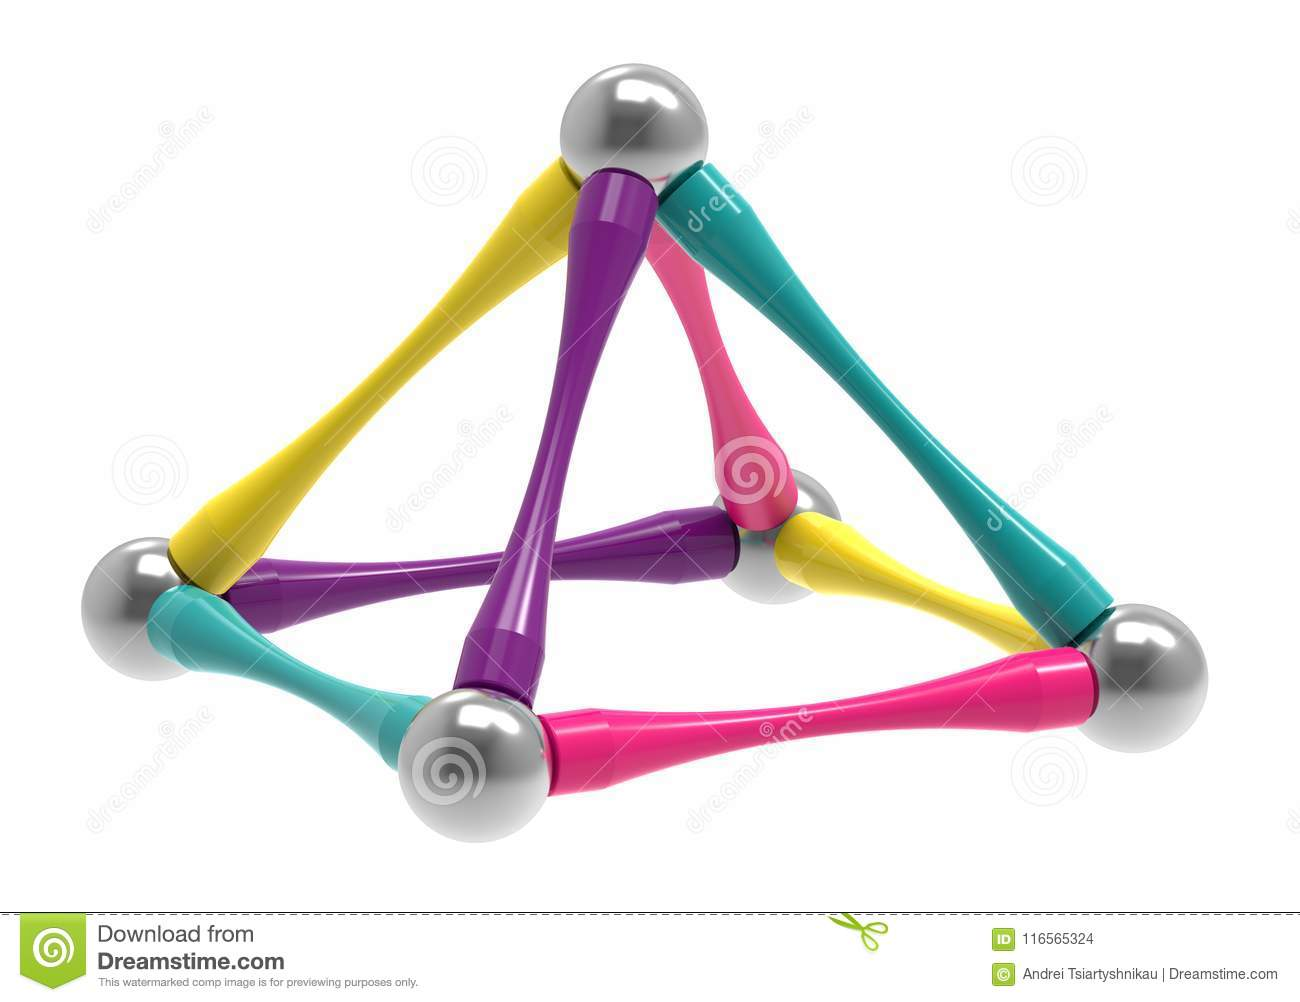 Children`s magnetic toy in the form of a piramid, 3D rendering.